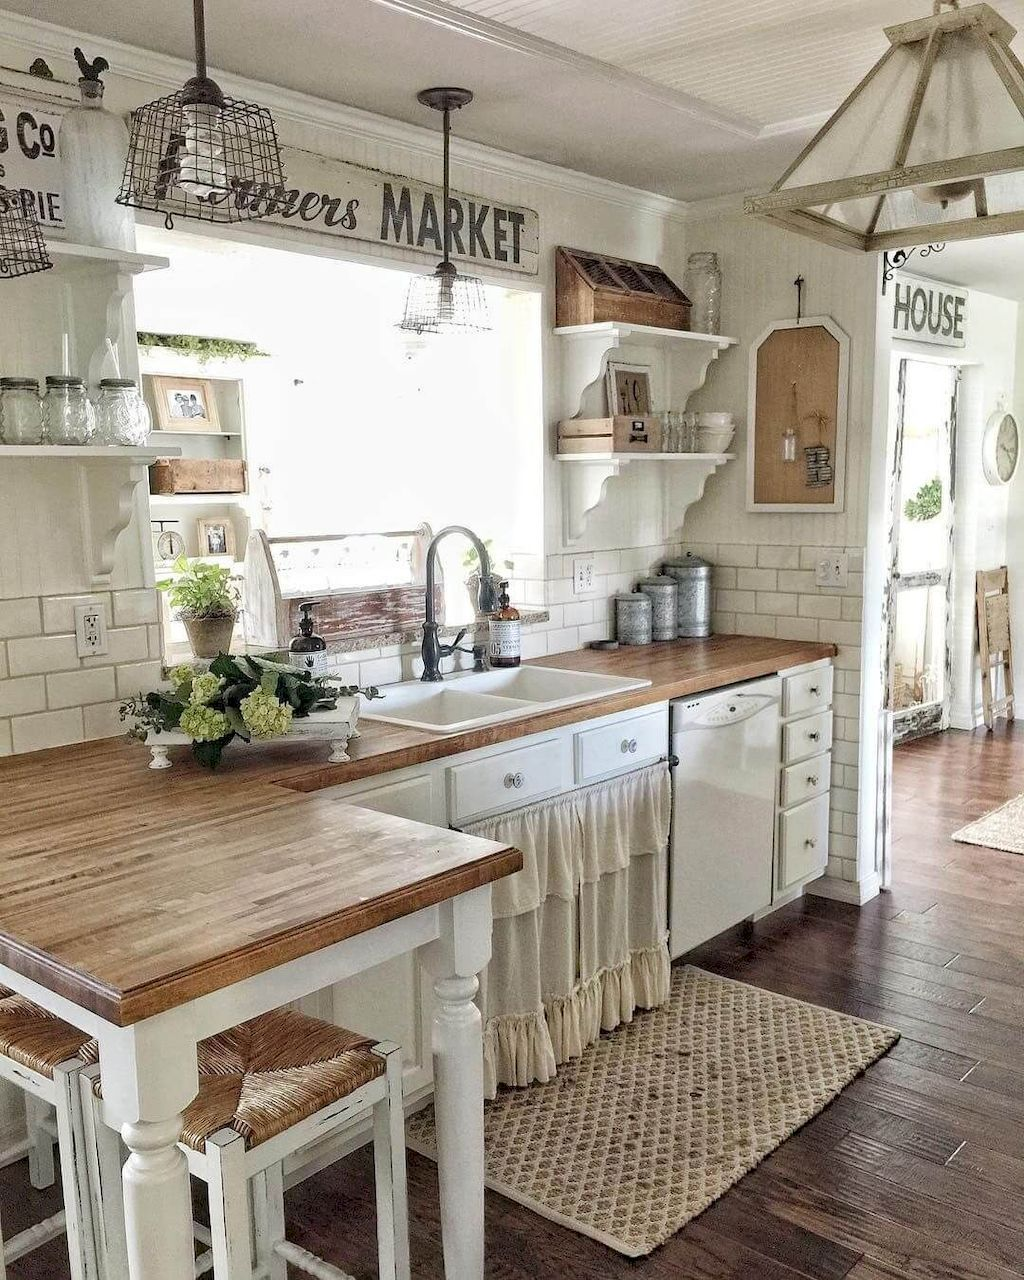 Farmhouse Kitchen Cabinets: Best Rustic Farmhouse Kitchen Cabinets In List (71